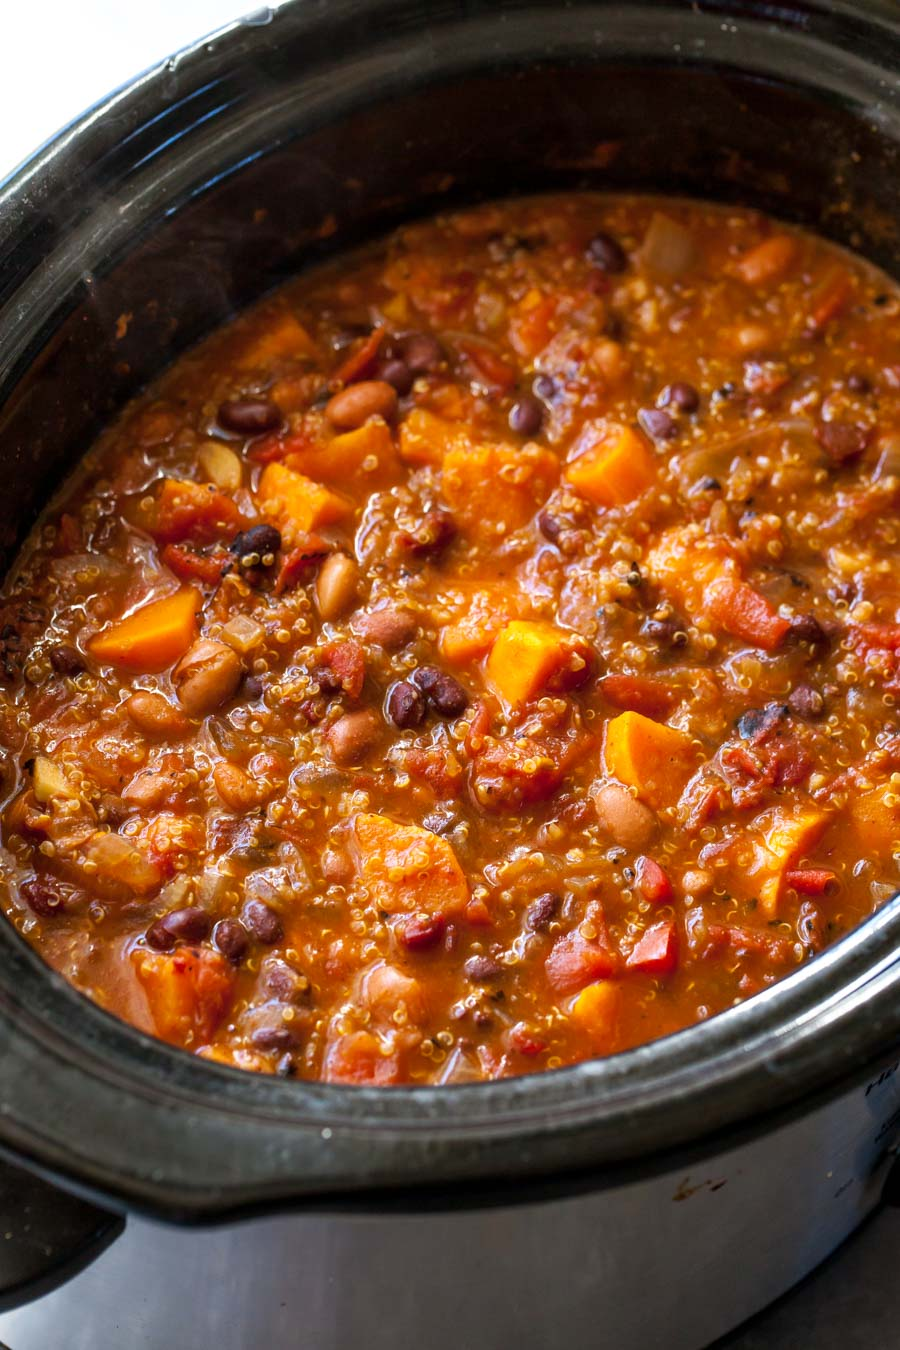 Vegetarian Chili in the Slow Cooker